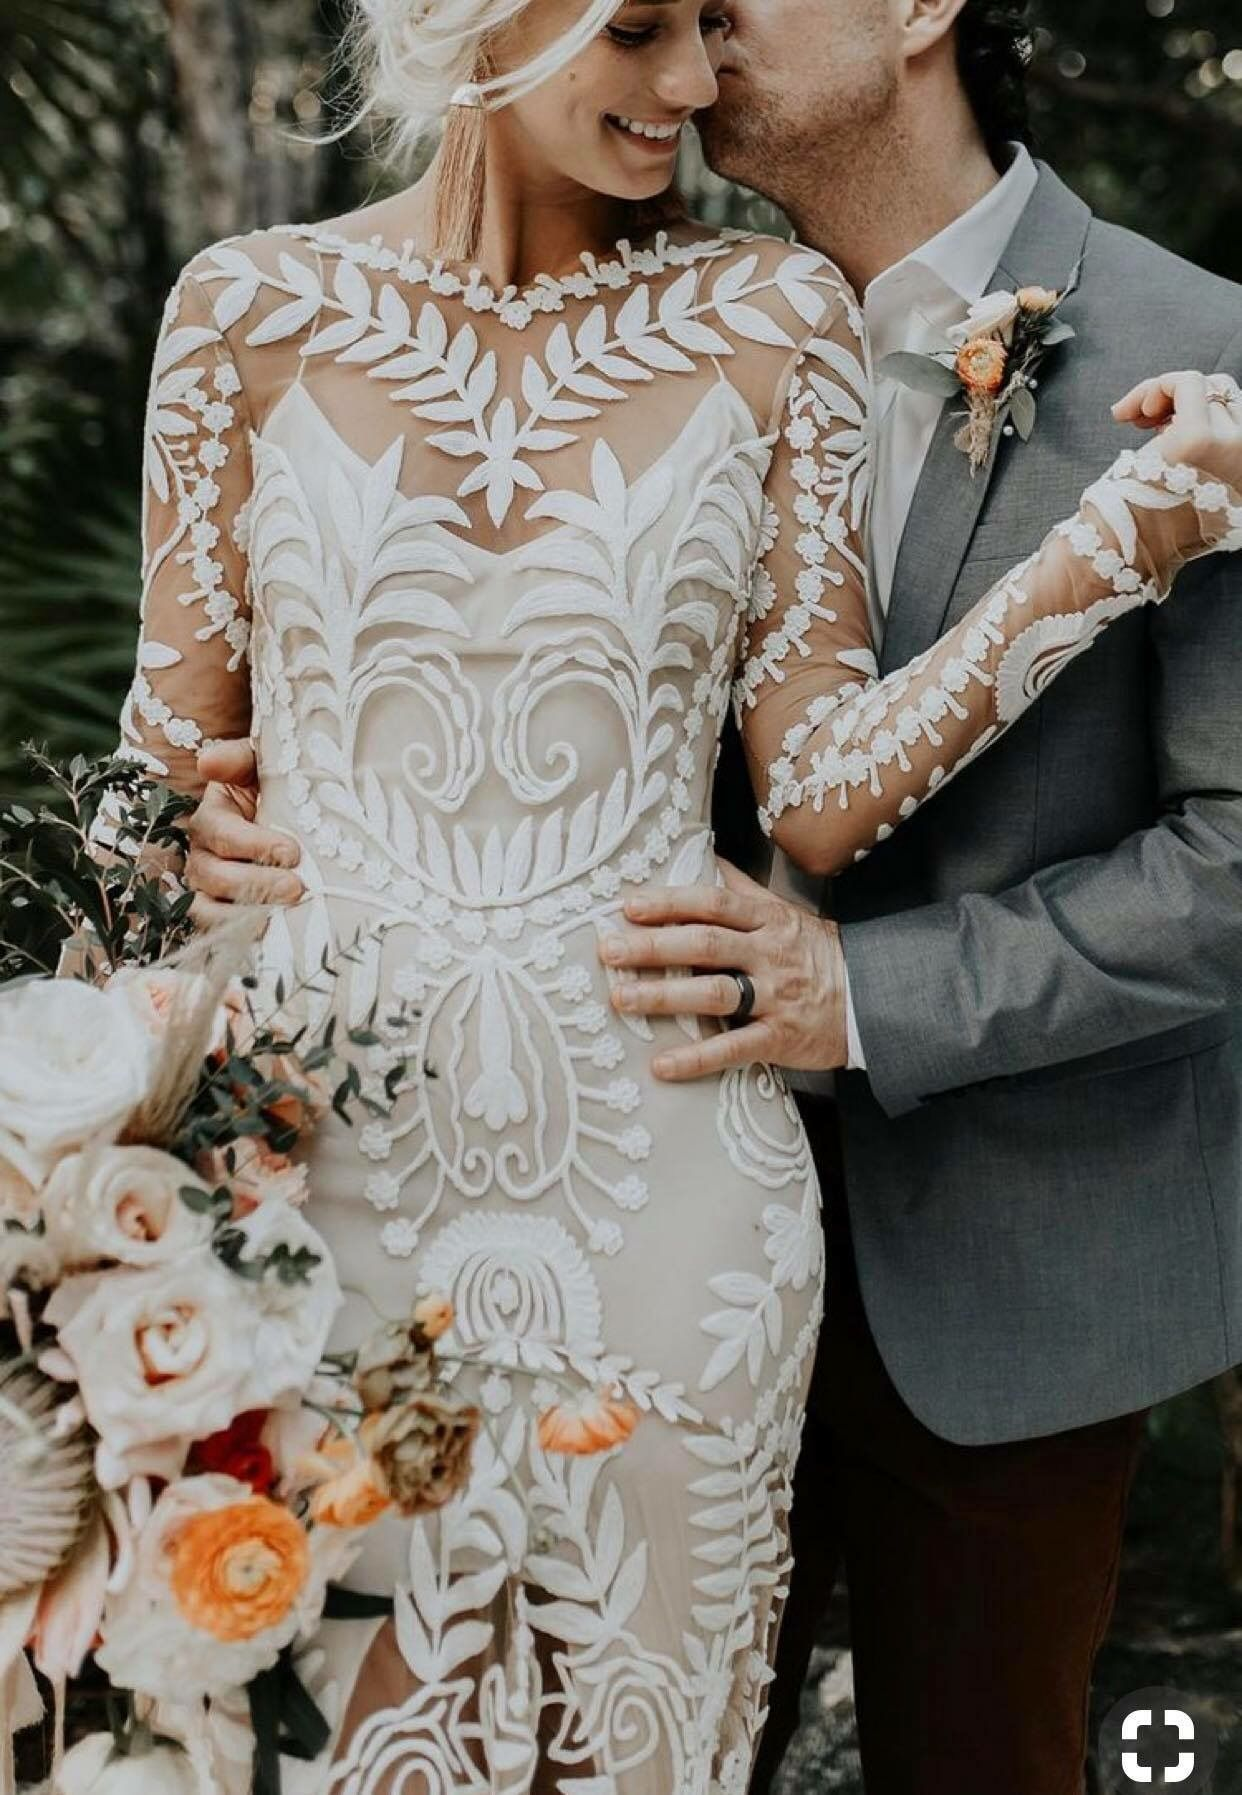 I Love This Dress So Unique Wedding Dresses Lace Wedding